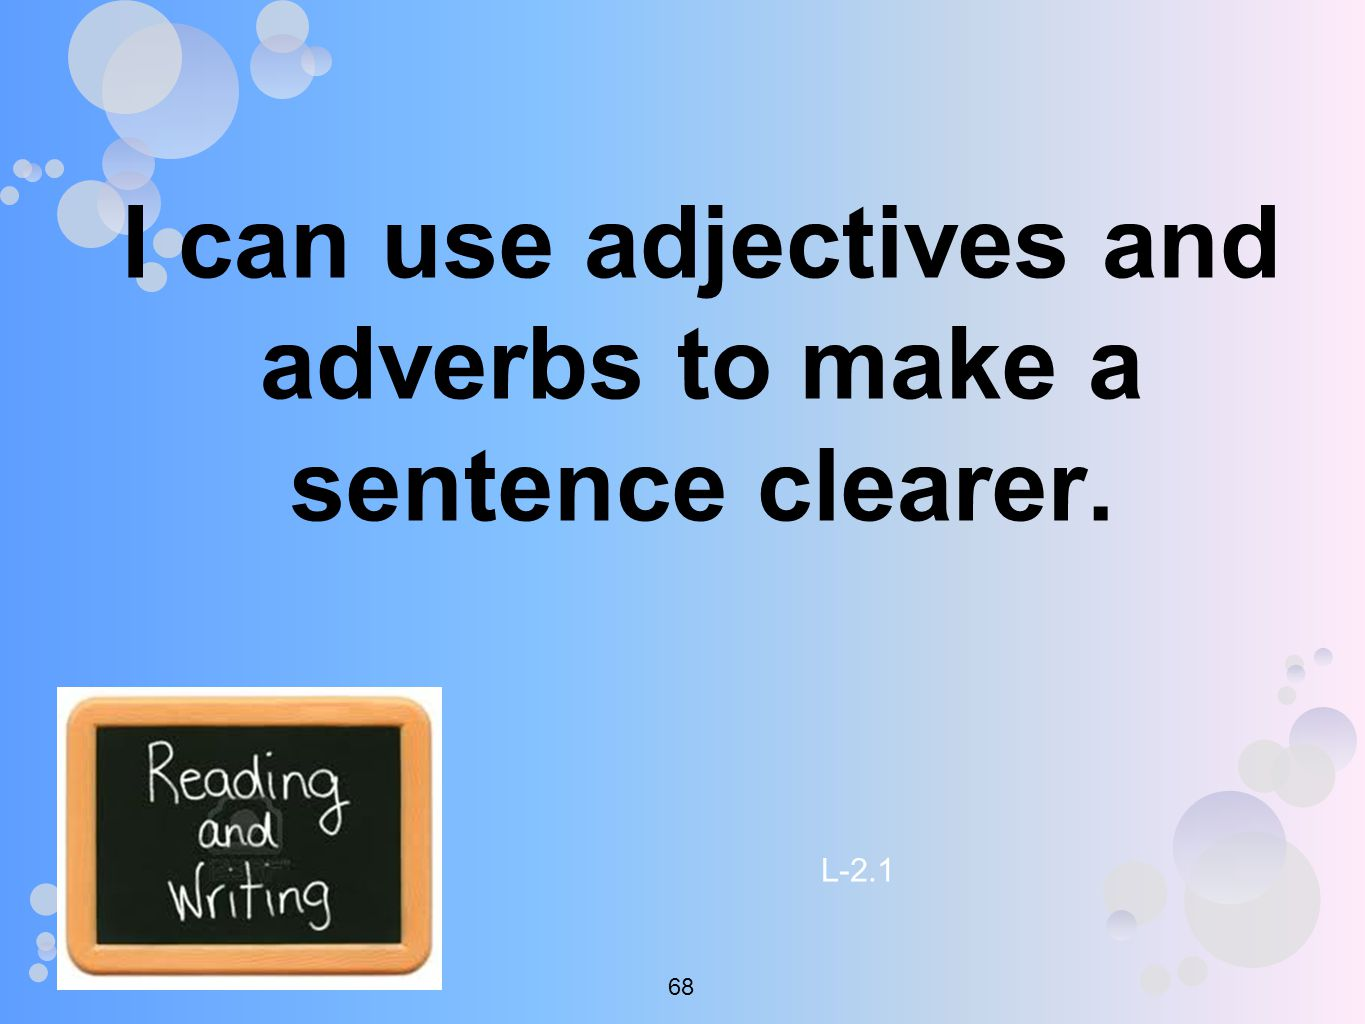 I can use adjectives and adverbs to make a sentence clearer. L